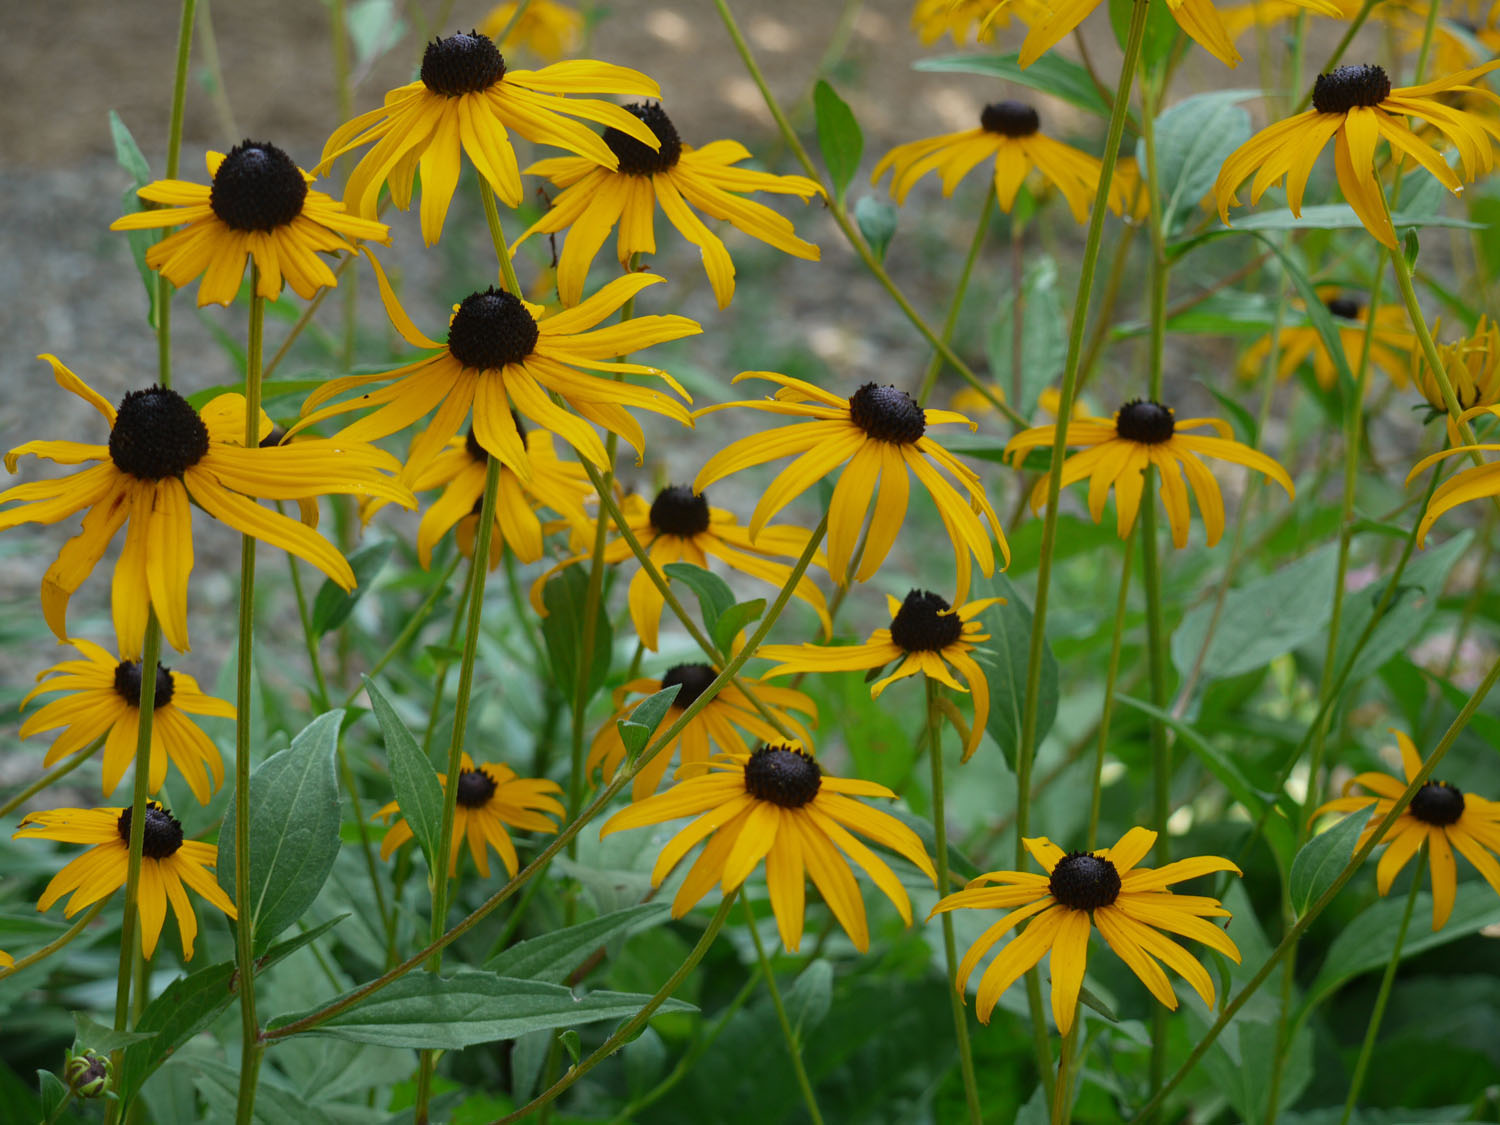 Black eyed susan identify that plant Black eyed susans